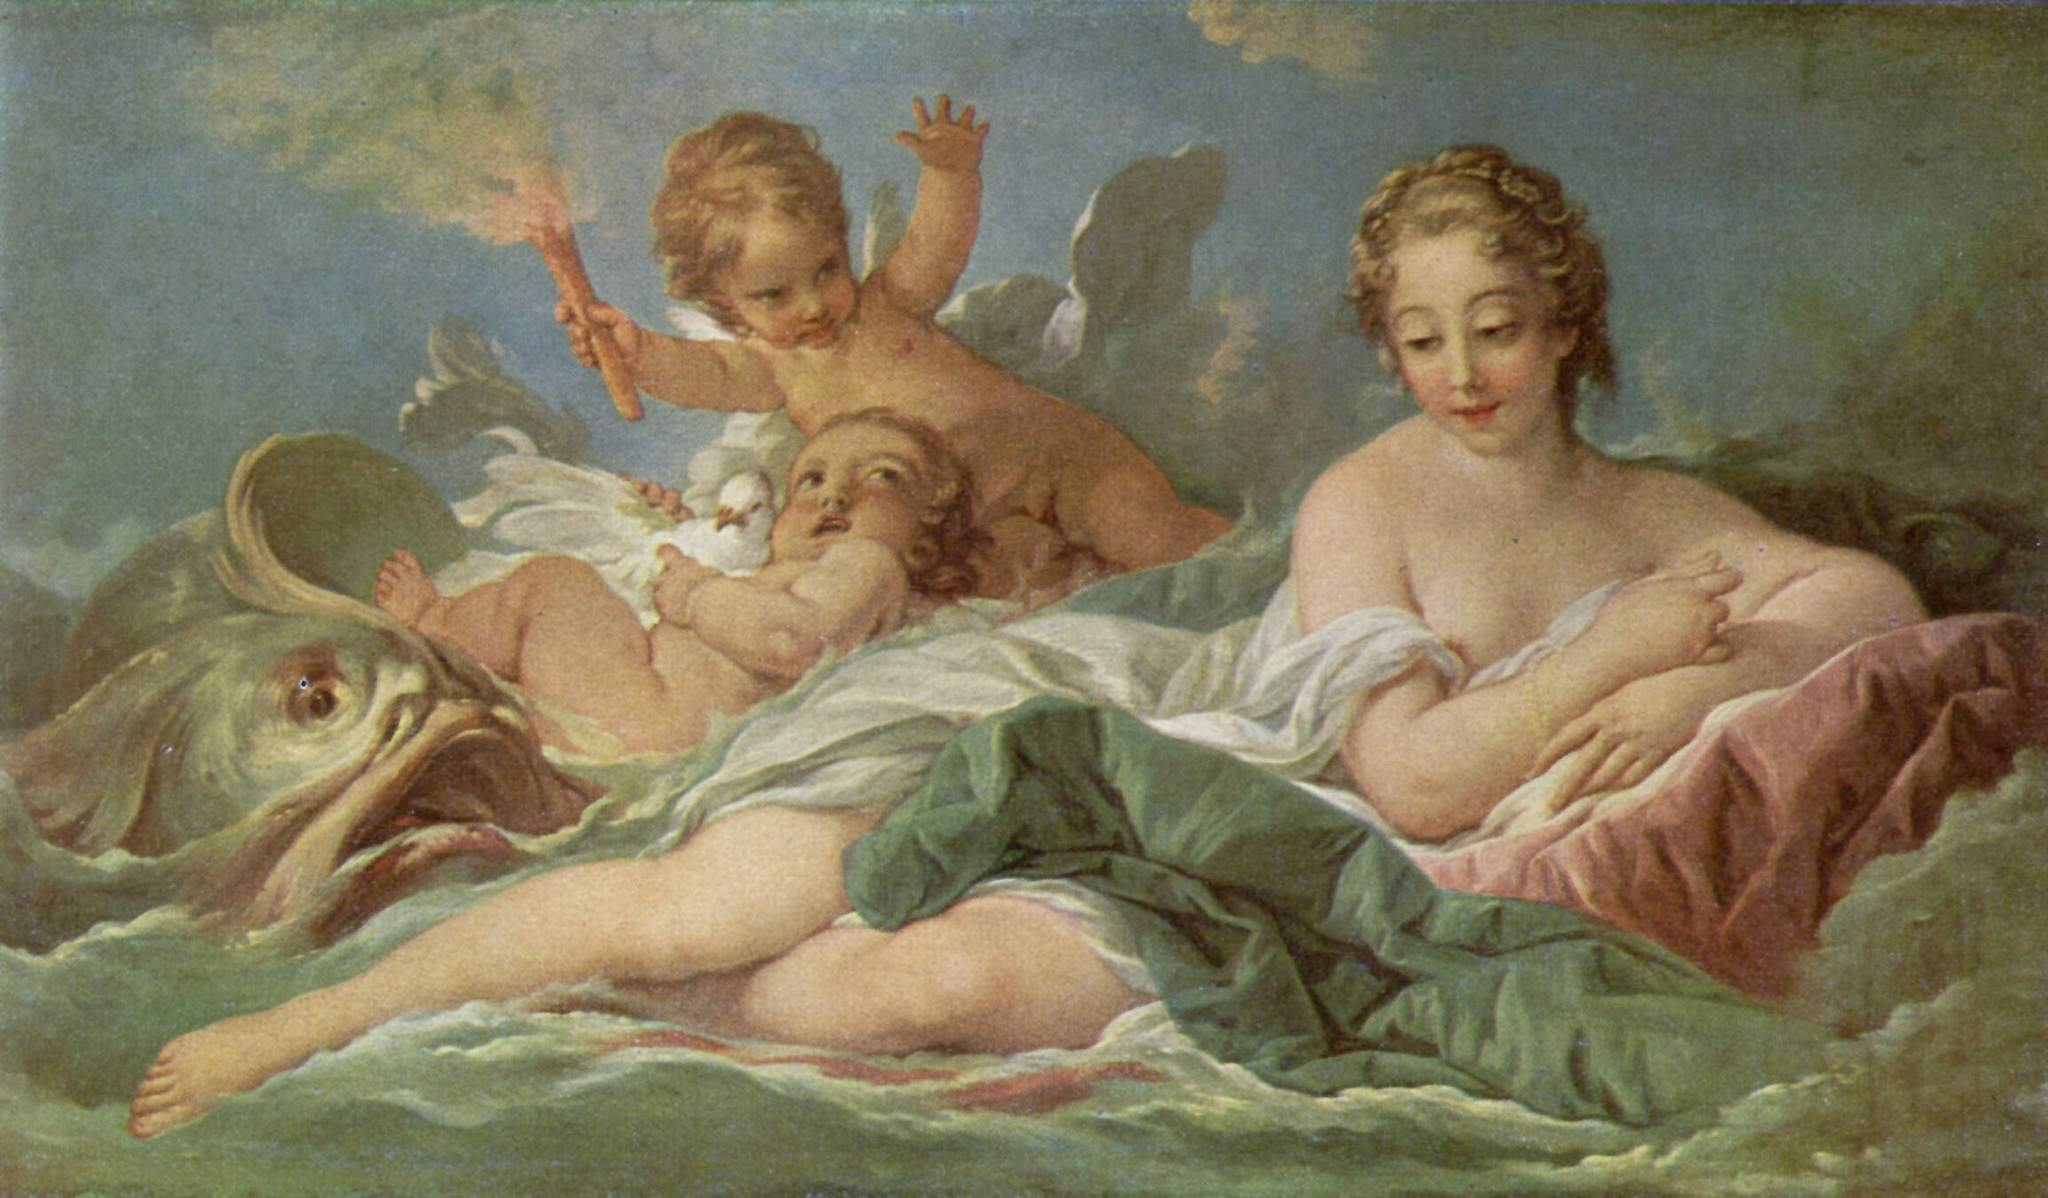 http://upload.wikimedia.org/wikipedia/commons/8/8b/Fran%C3%A7ois_Boucher_011.jpg